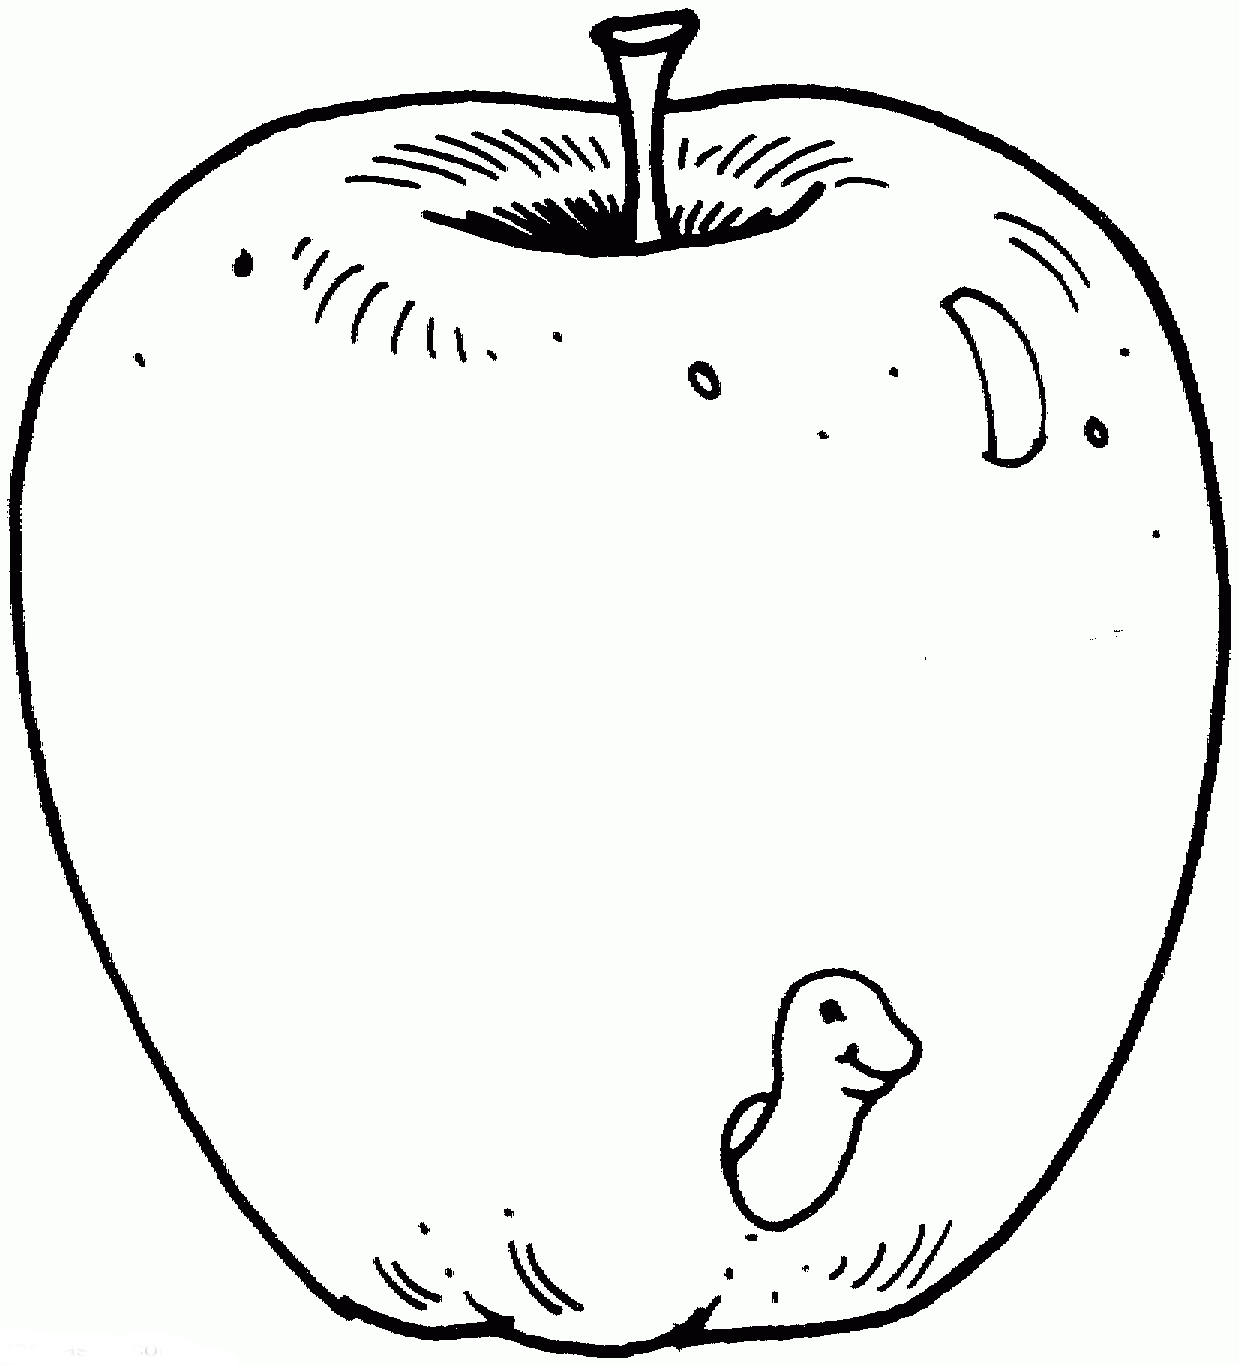 apple dumplin coloring page free printable coloring pages - HD 1239×1365